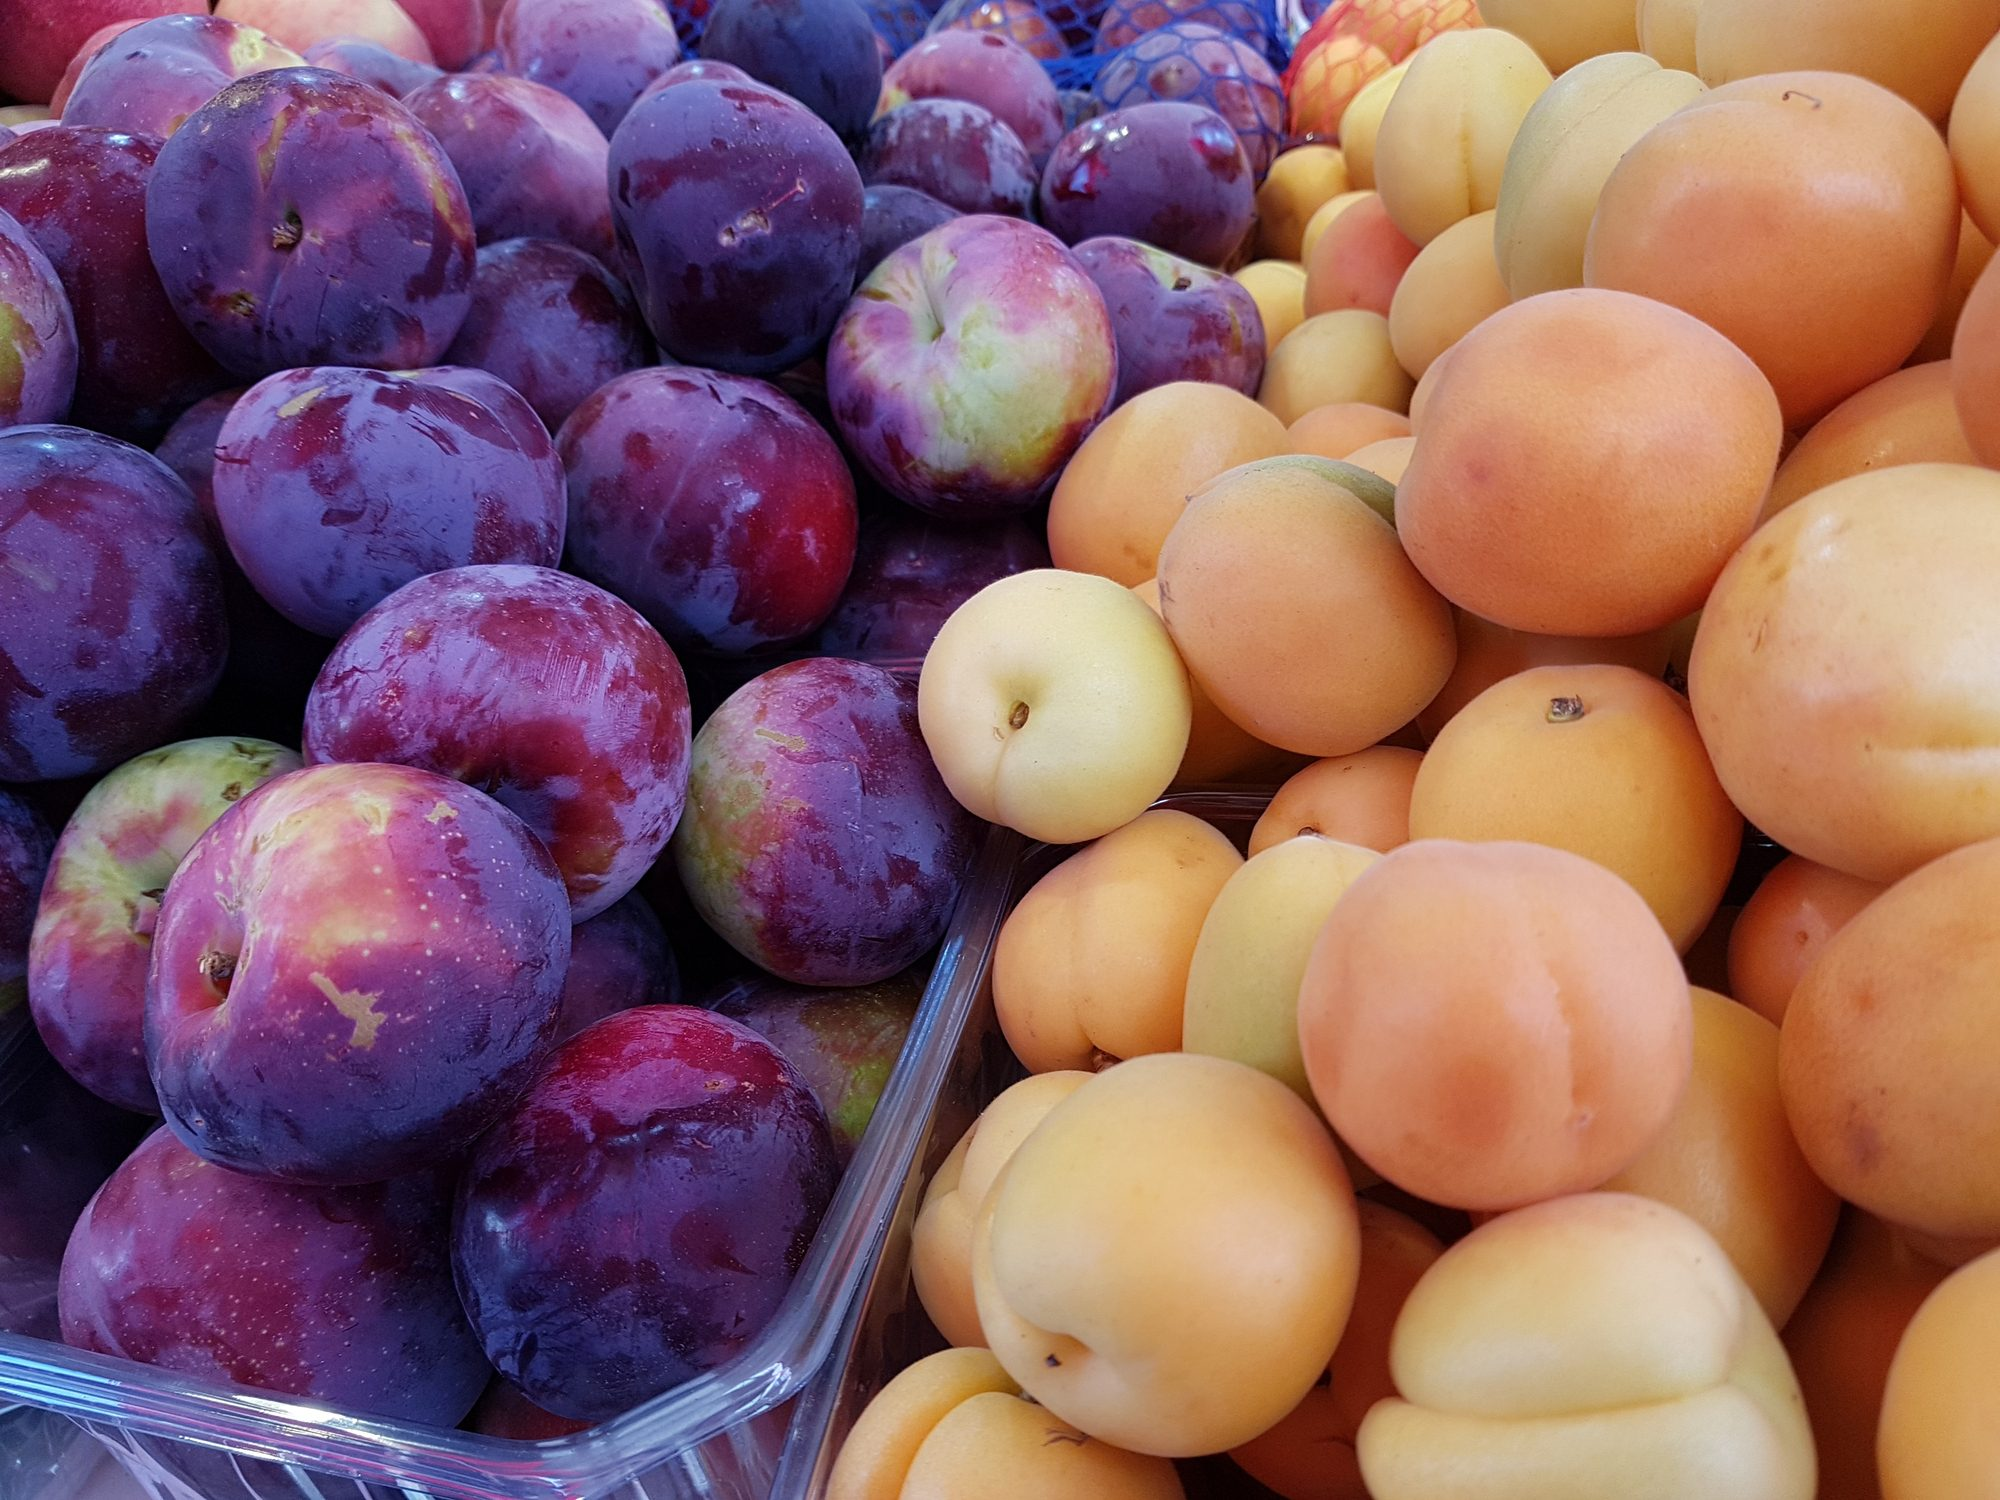 Plums and apricots at the market, in summer